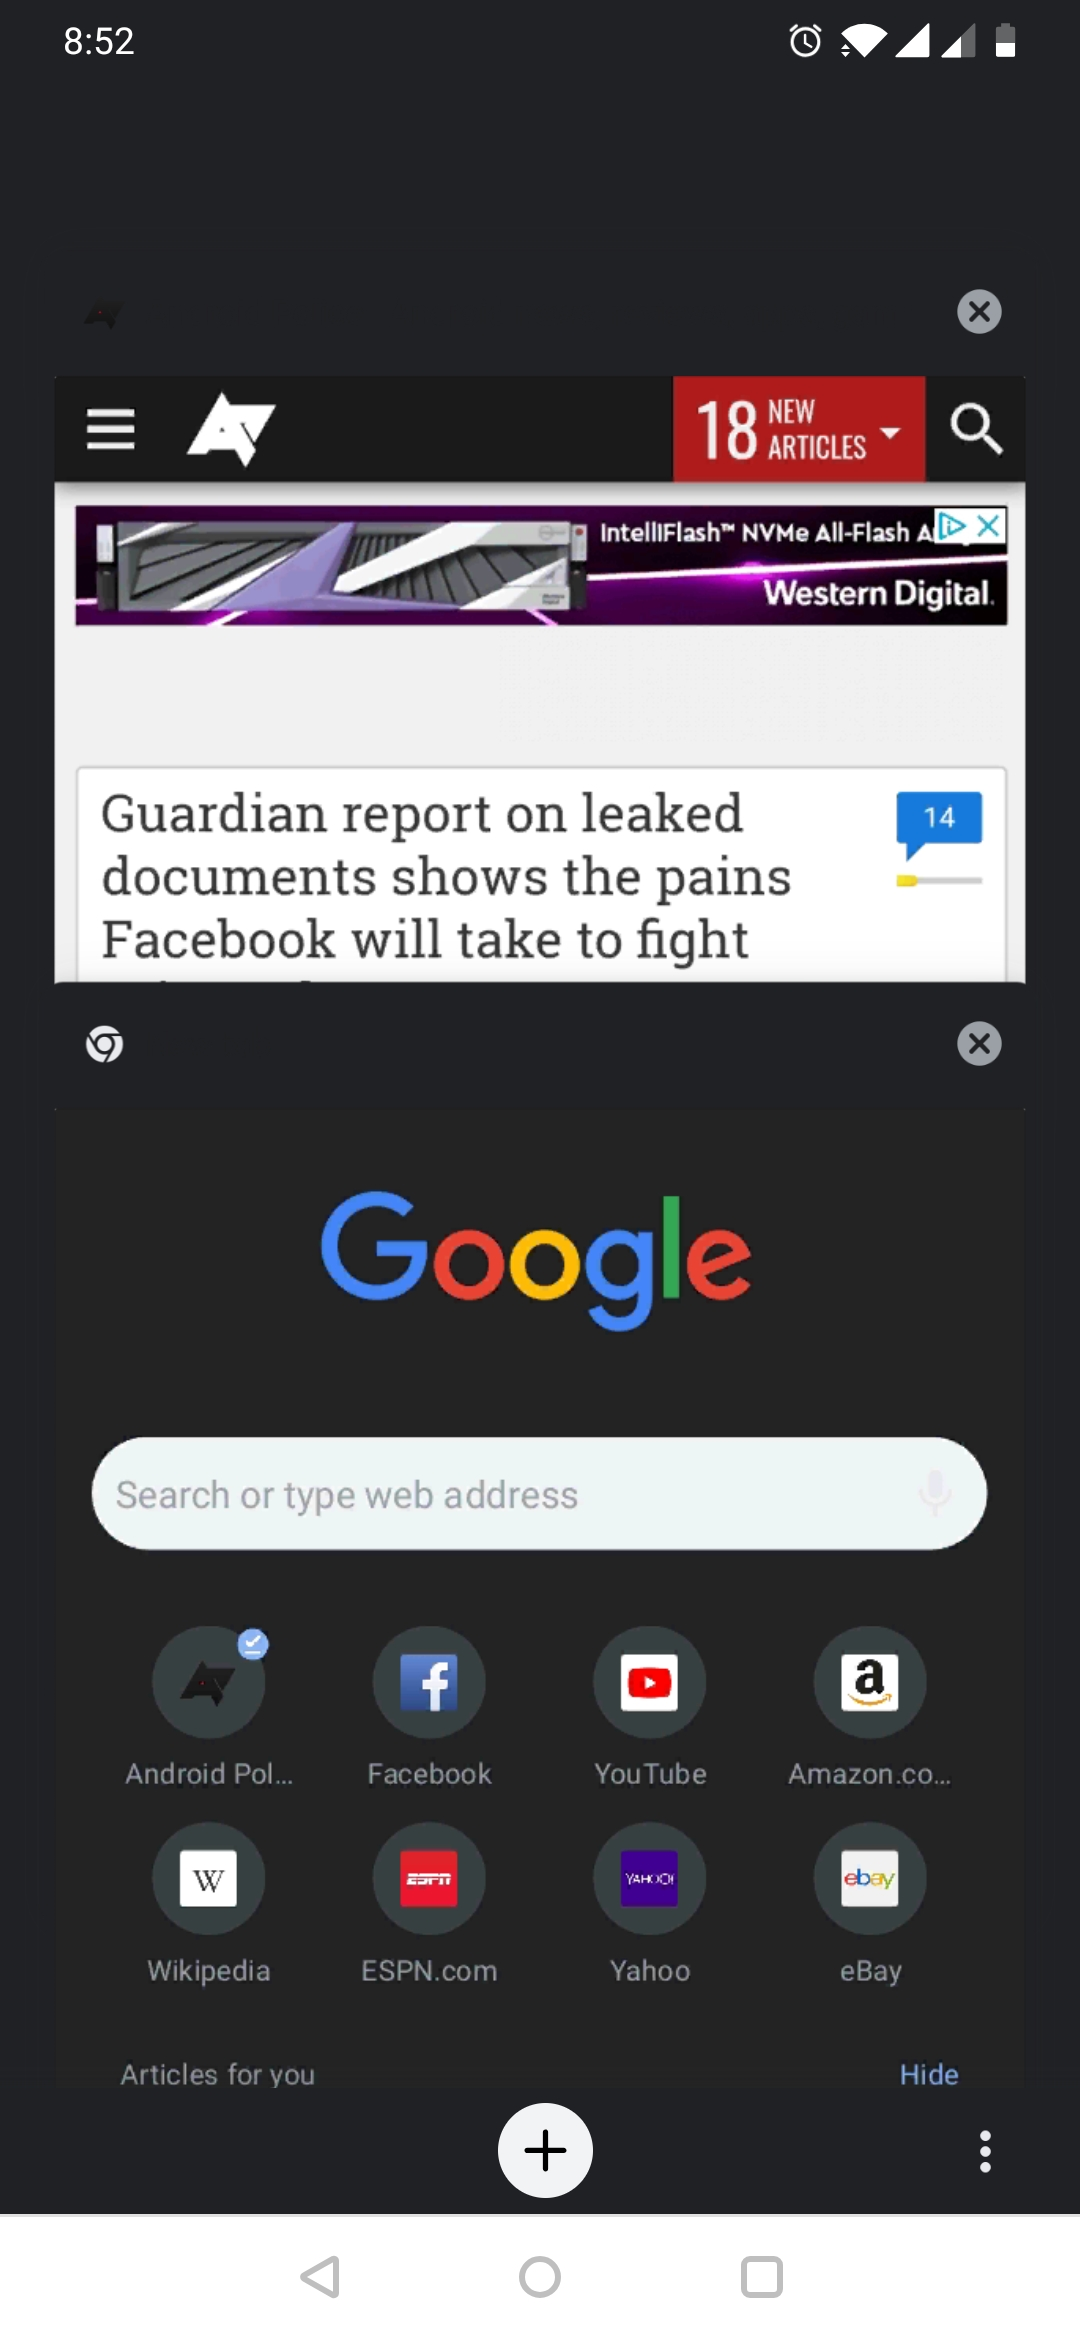 Update: Now in Stable] Chrome Canary now has a (buggy) dark mode